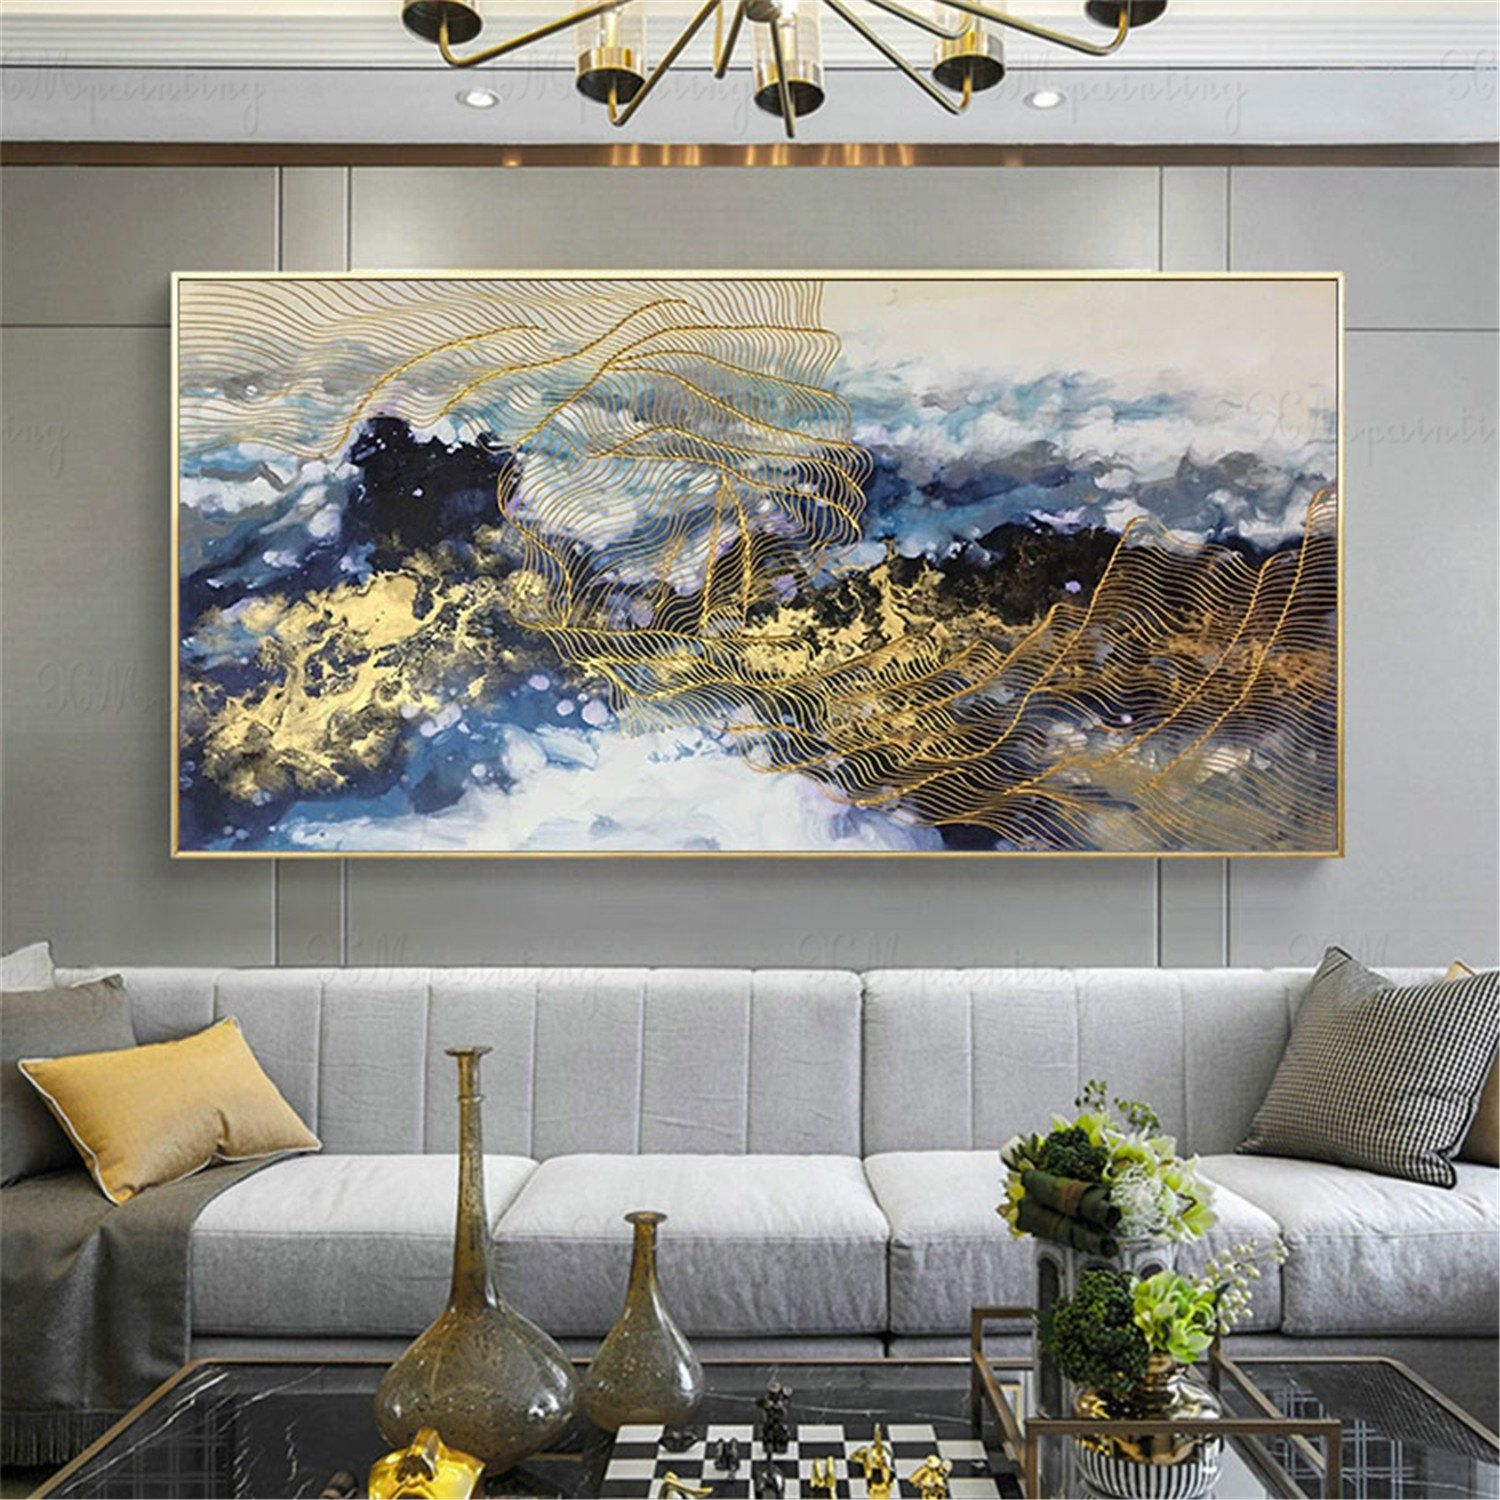 Navy Blue Gold Lines Wall Painting Wall Decor For Living Room Abstract Cloud Landscape Wall Art Home Decor Framed Acrylic Handmade Artwork Etsy Wall Art Wall Canvas Wall Art Pictures Modern art frames for living room